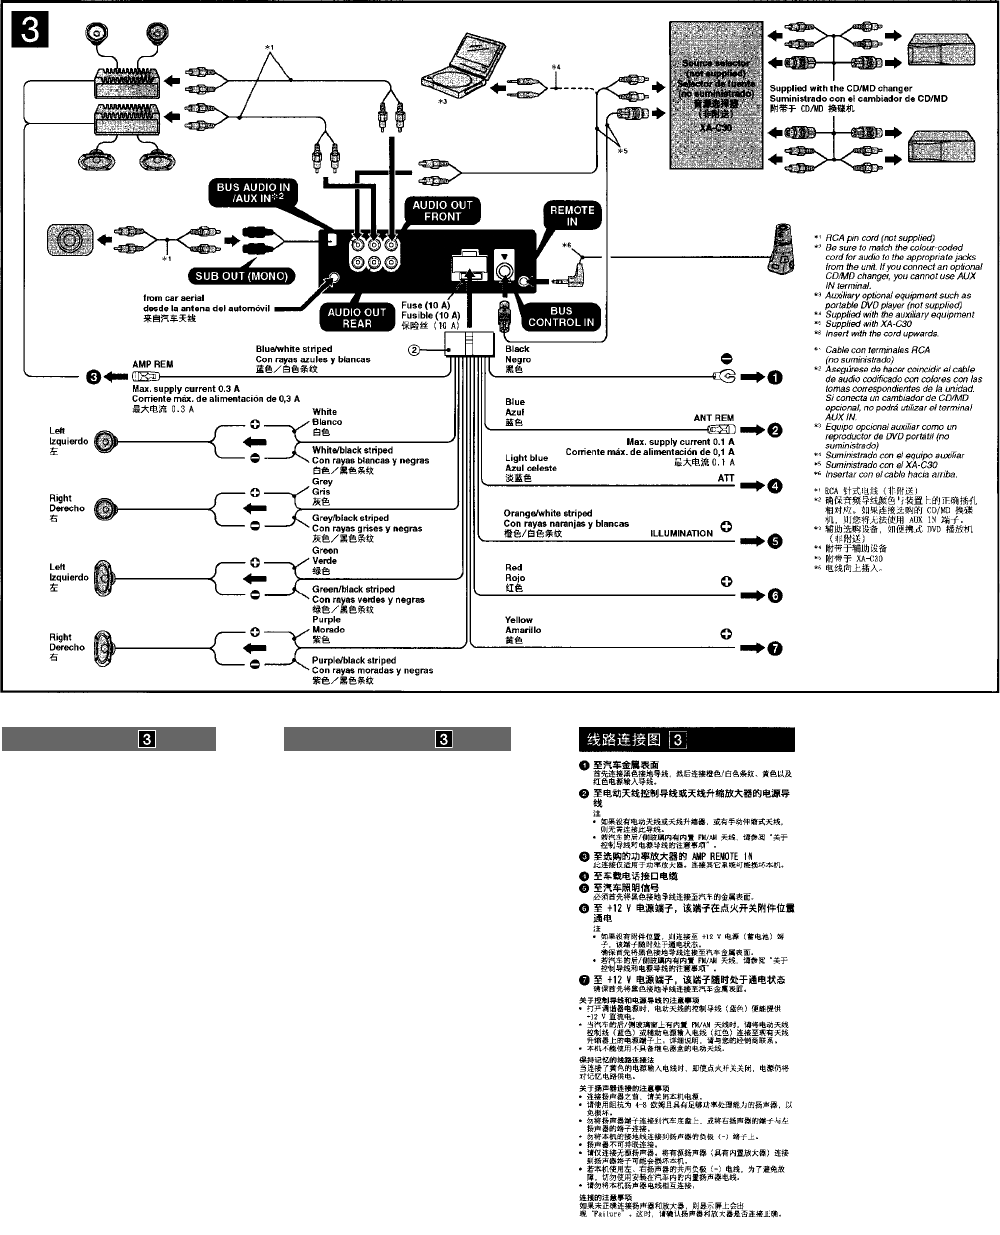 00b7692a 1a7a 4cff bd62 4e4d1c3a13d9 bga page 10 of sony car stereo system cdx gt550 user guide sony cdx gt30w wiring diagram at n-0.co